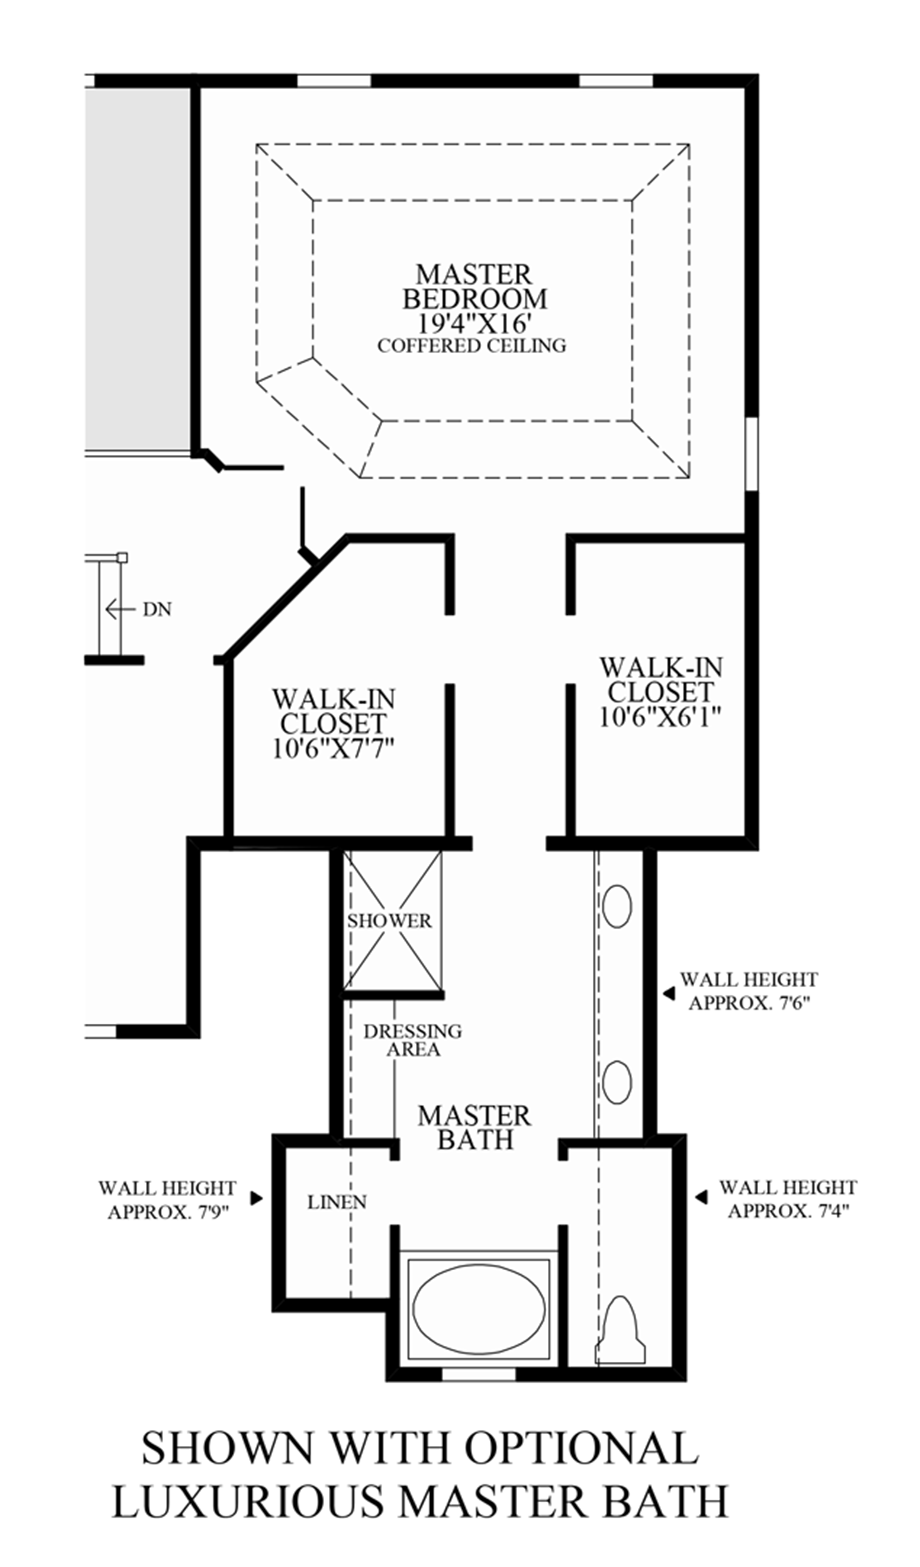 high pointe at st georges carolina collection the On luxury master bath floor plans